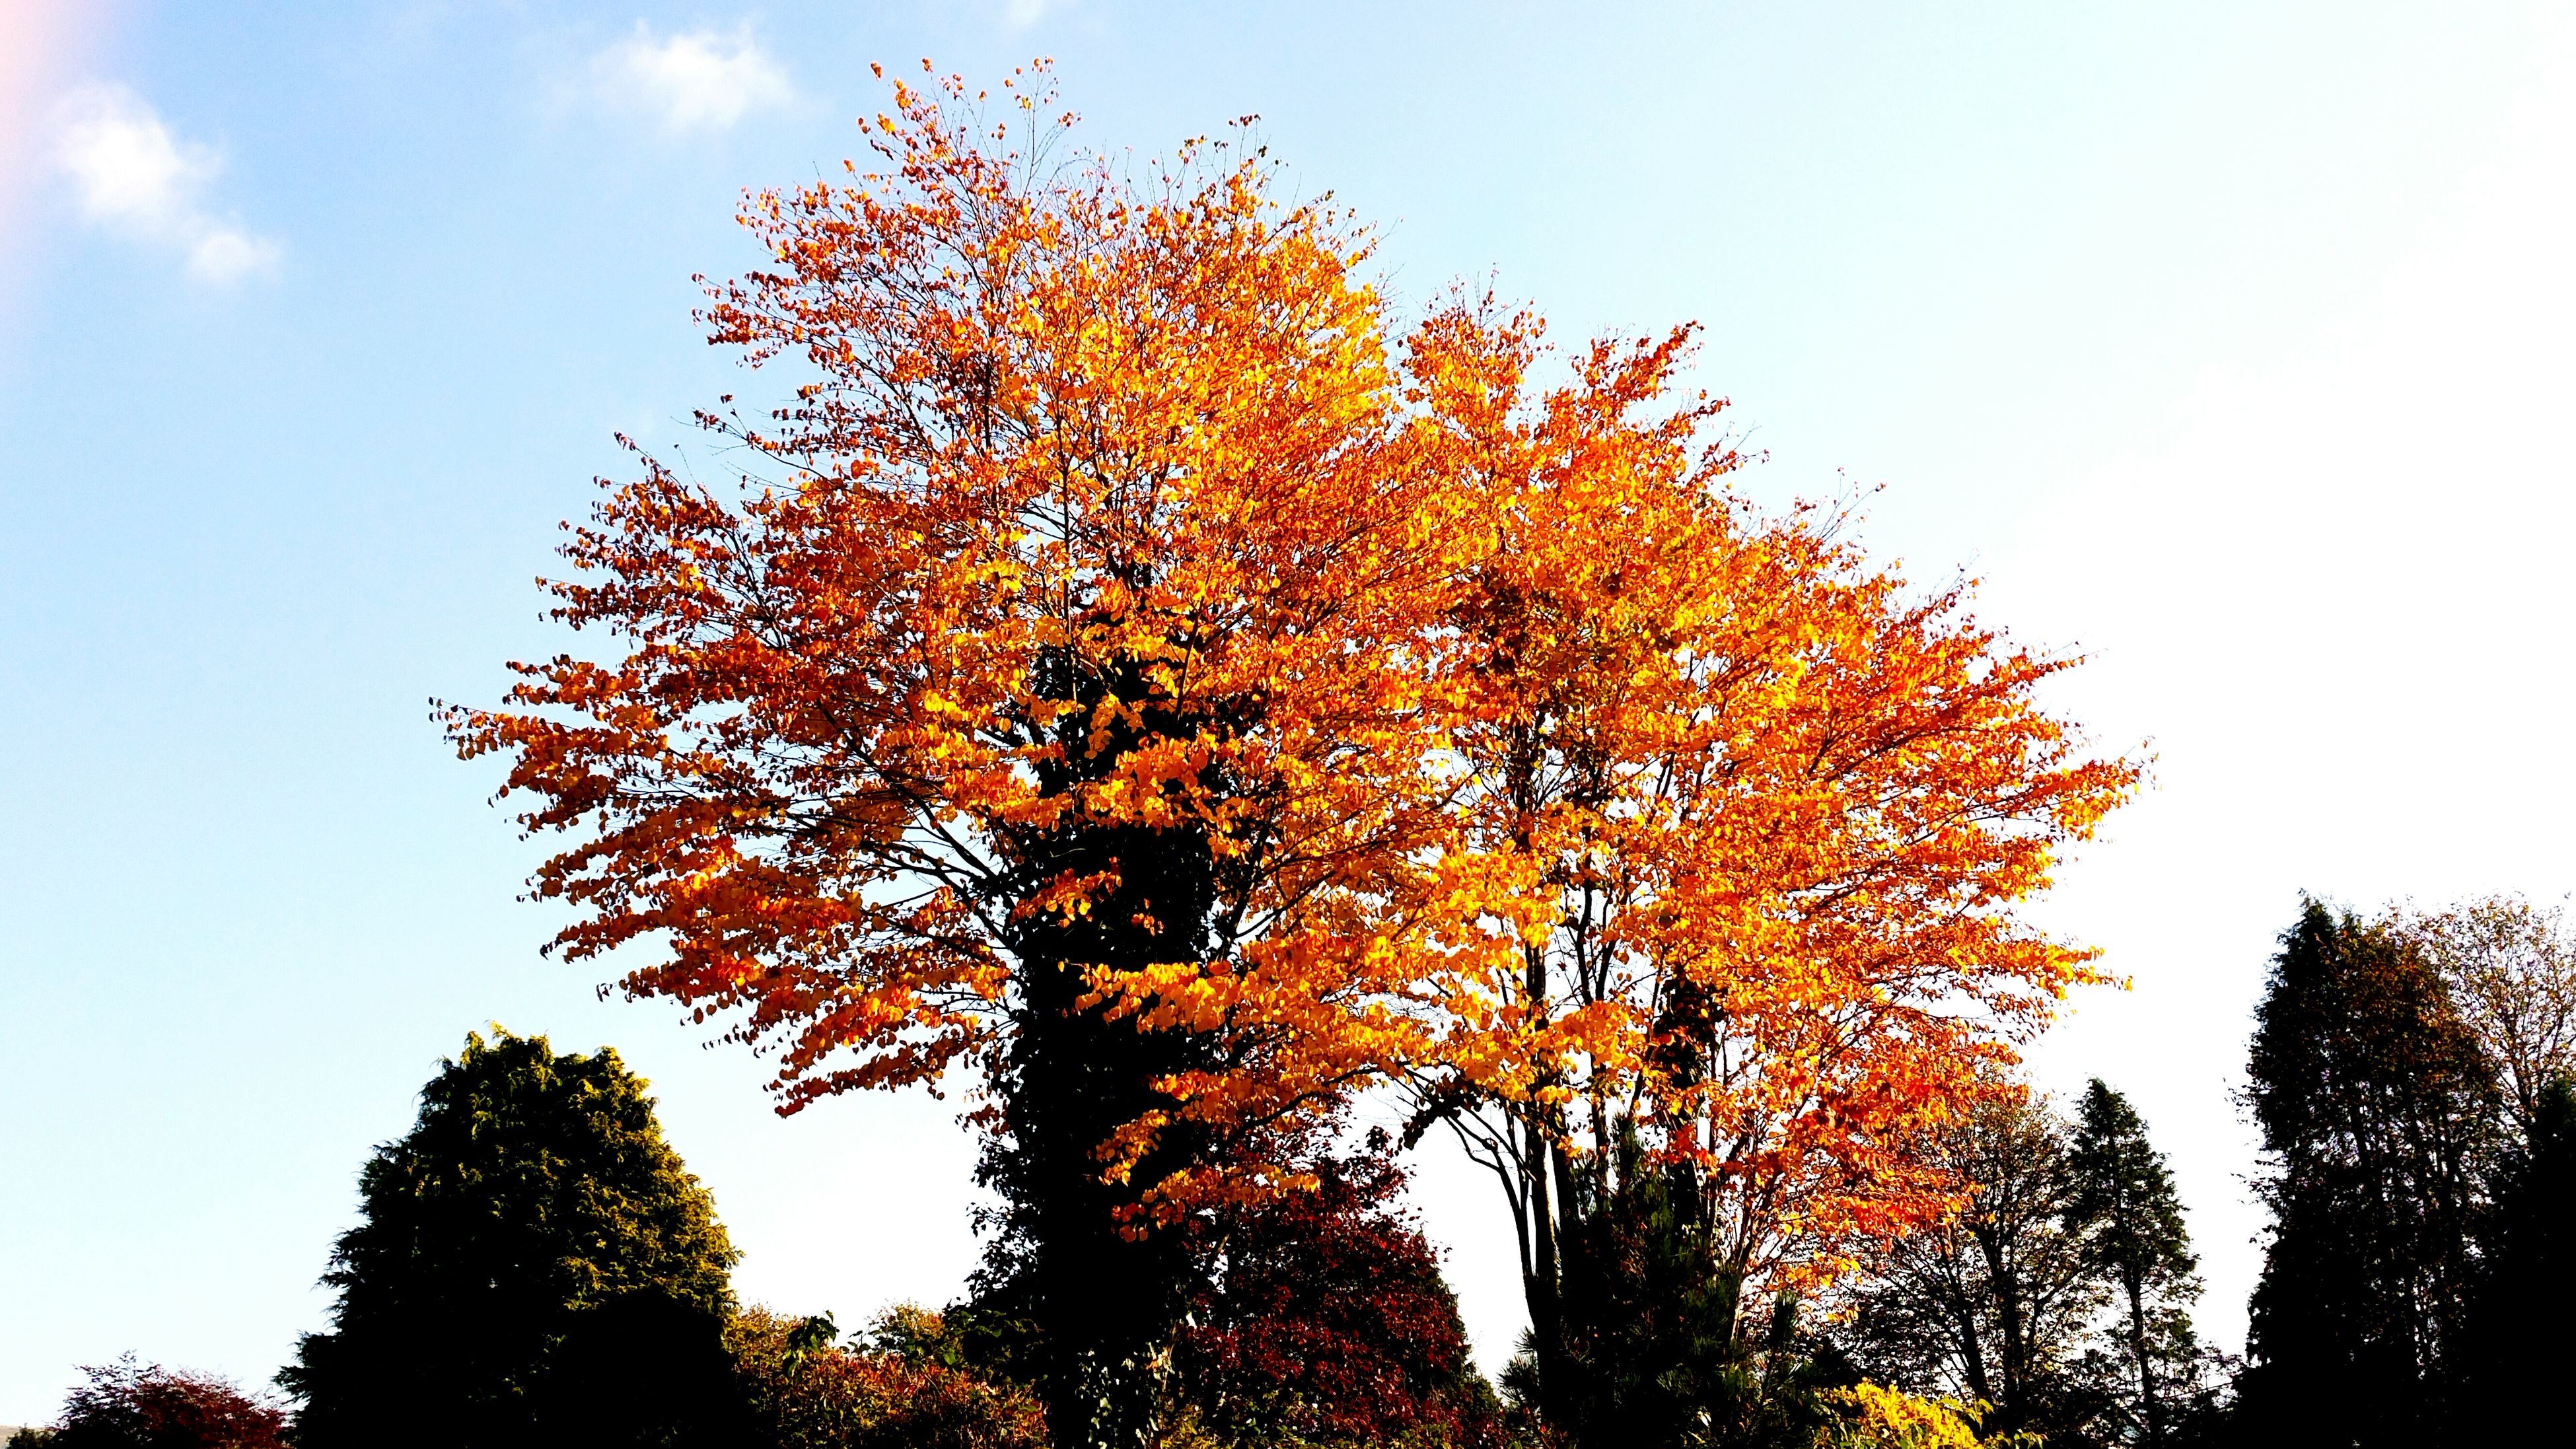 tree, autumn, change, low angle view, season, orange color, beauty in nature, growth, tranquility, clear sky, branch, nature, sky, scenics, tranquil scene, outdoors, no people, day, idyllic, non-urban scene